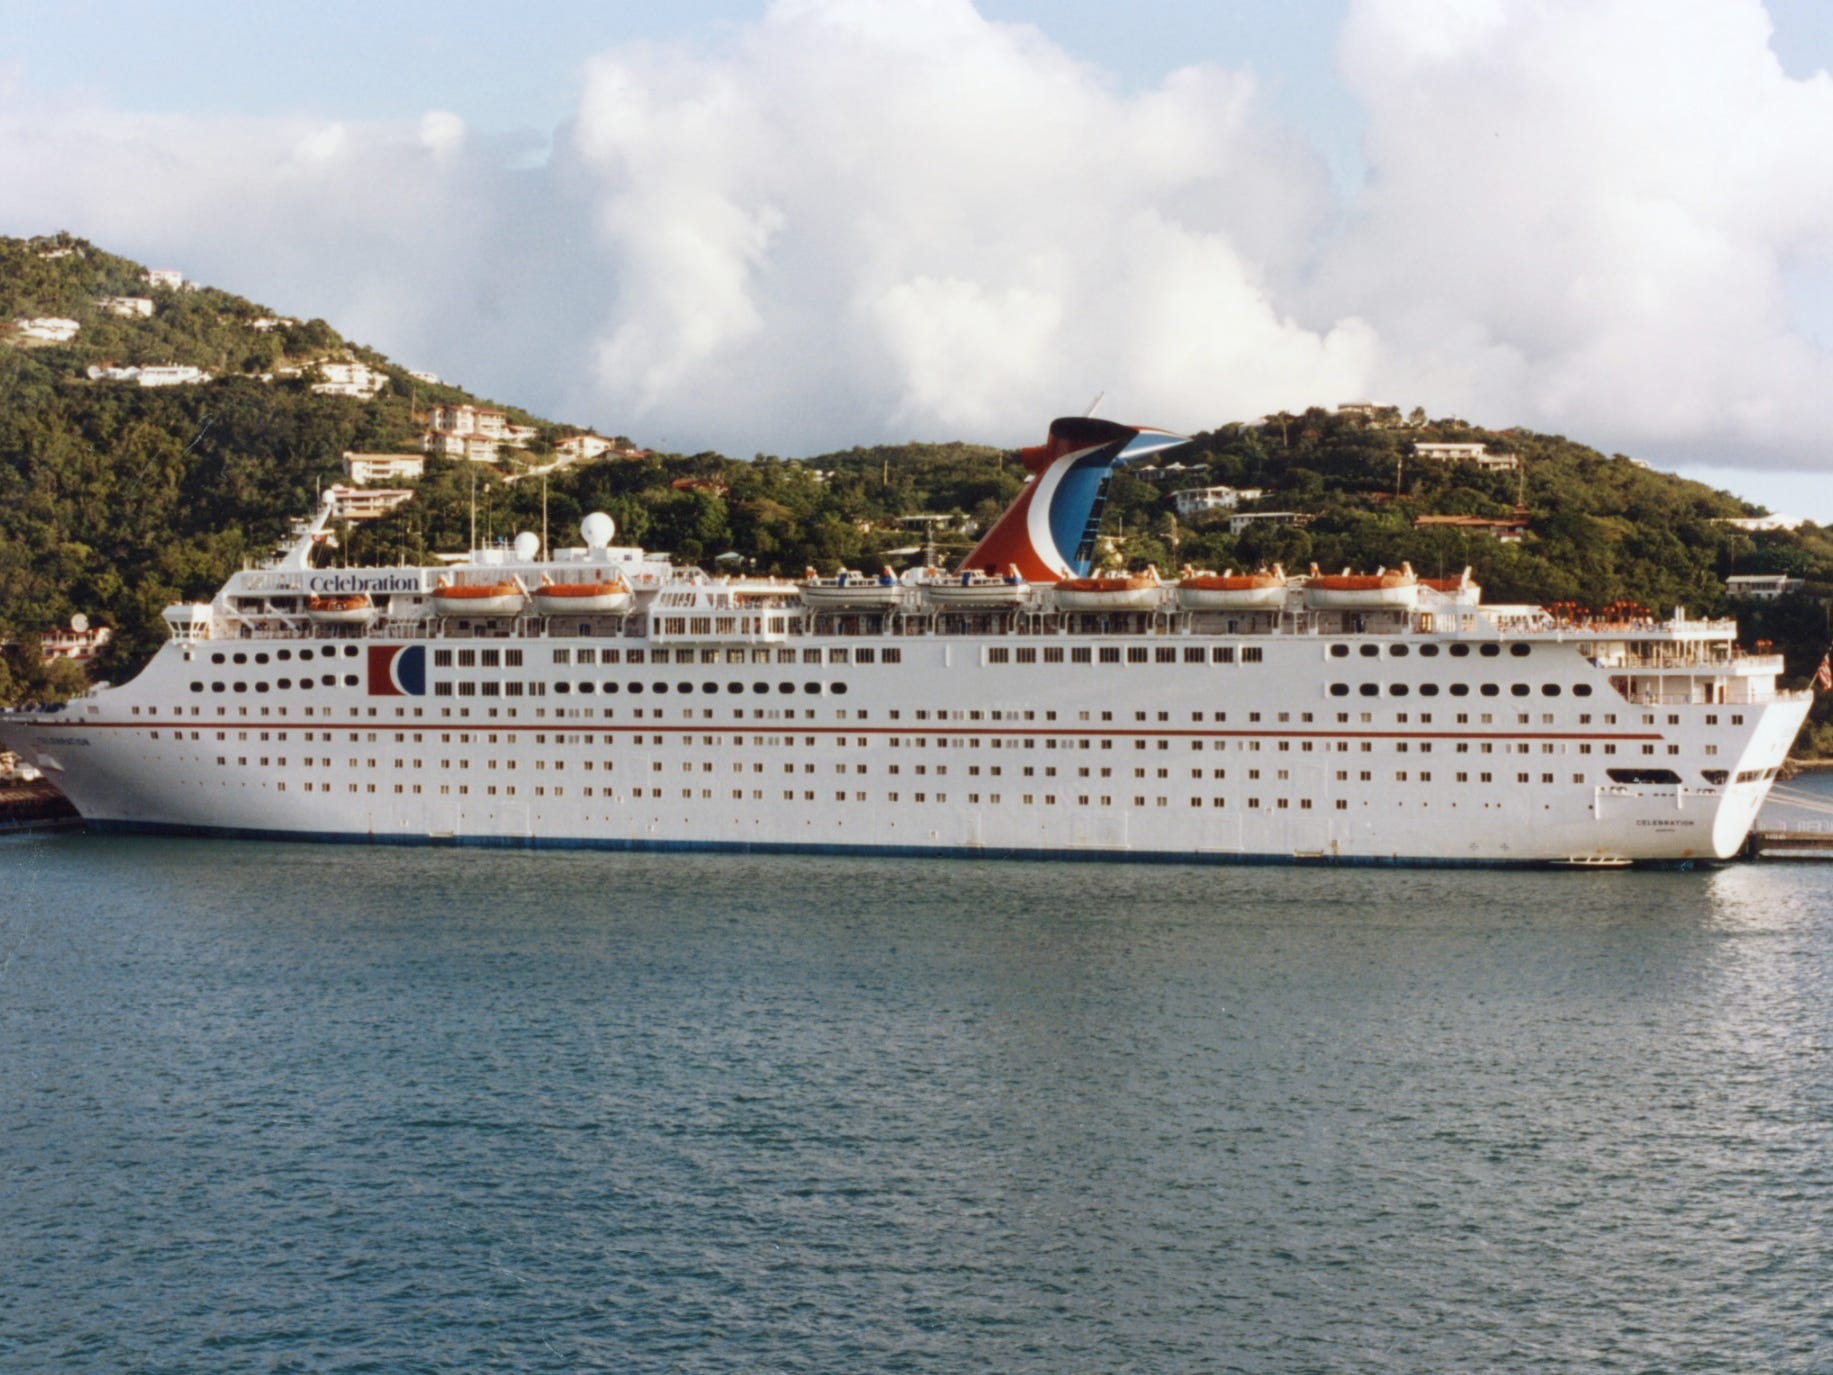 The Celebration was based in the Caribbean for most of its career with Carnival.